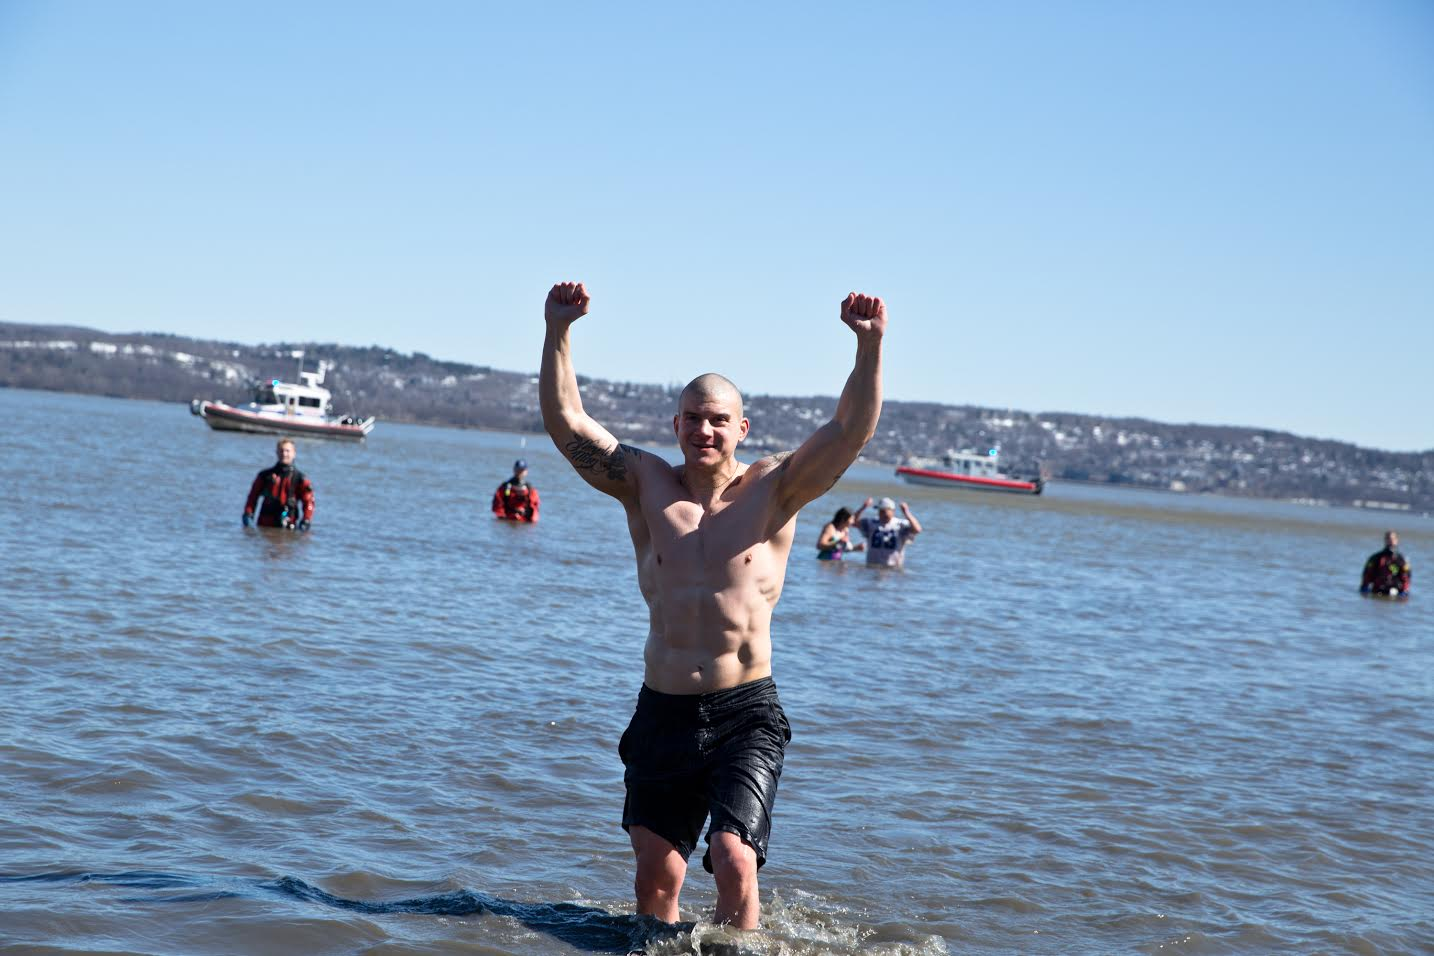 WHO SAYS IT'S COLD? POLAR SWIMMERS STAY WARM BY OPENING THEIR HEARTS TO CHARITY